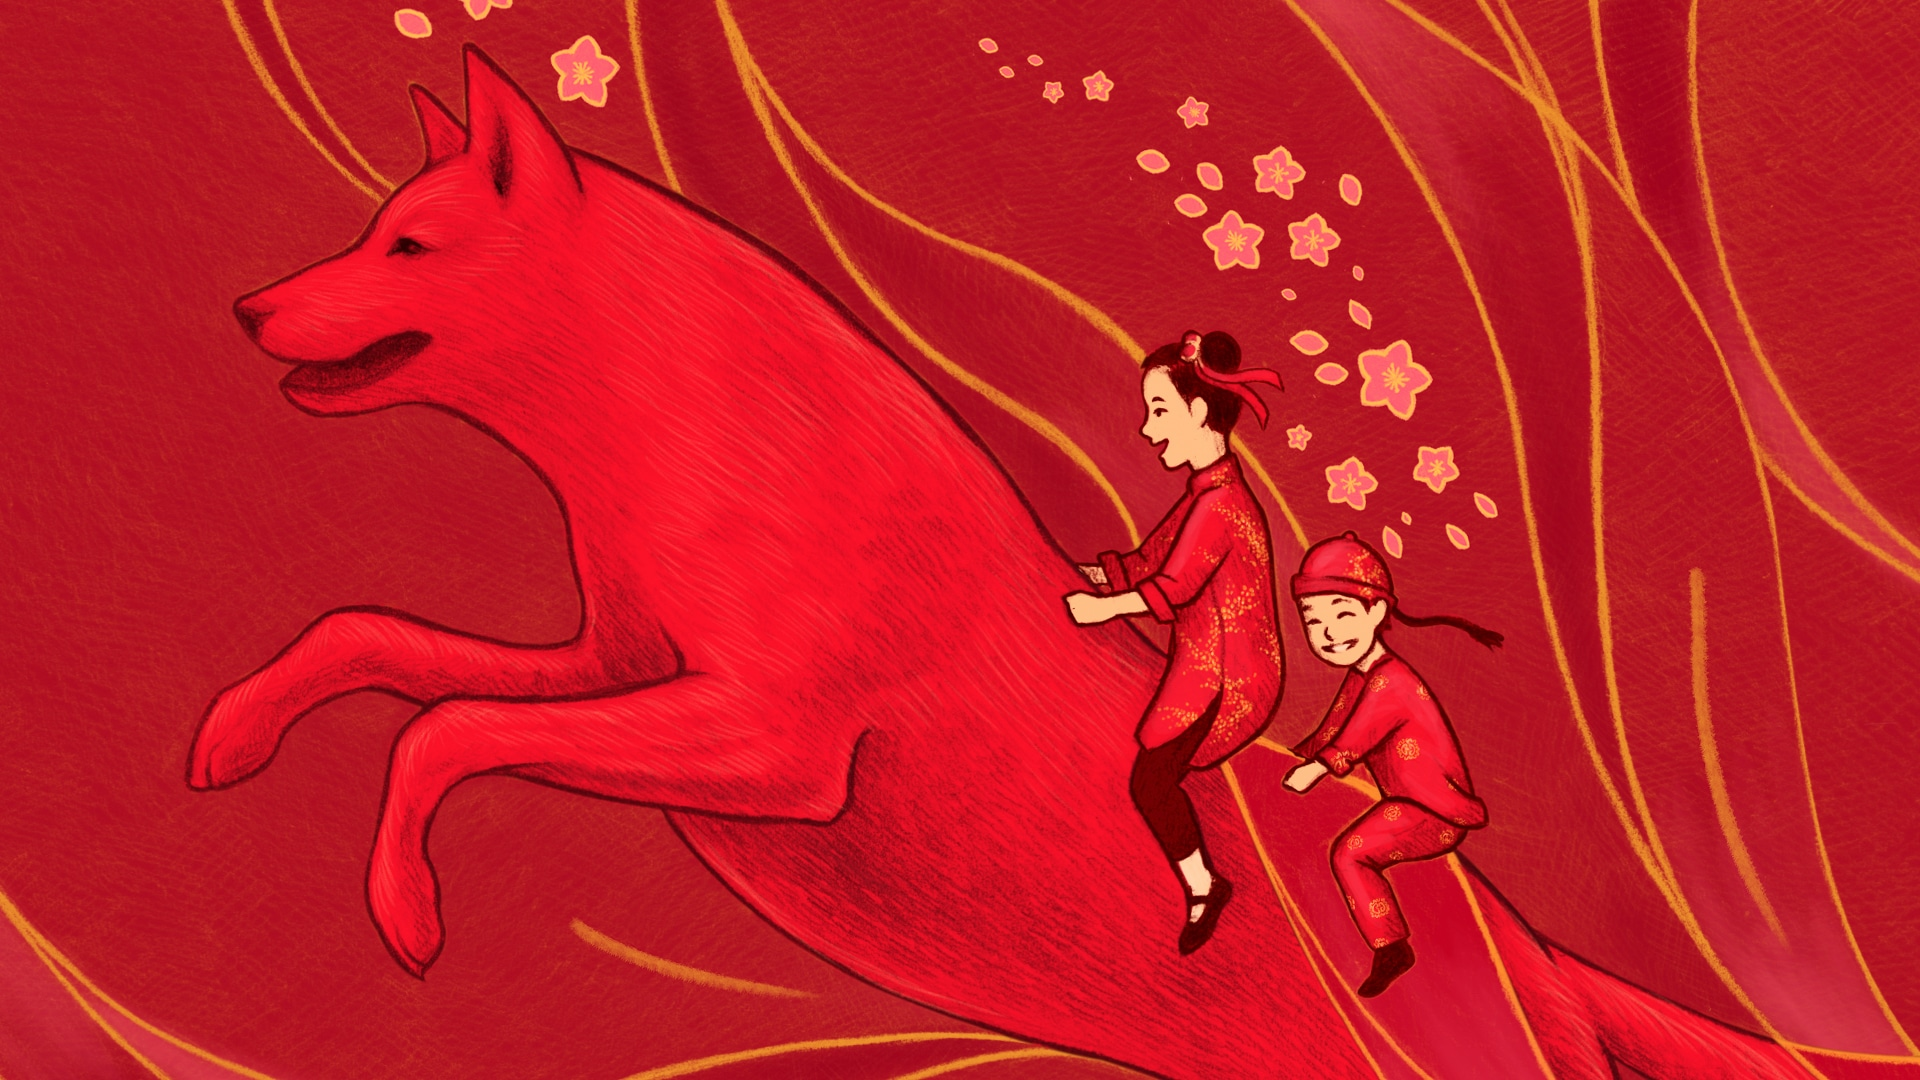 A New Year, A New You — Gung Hay Fat Choy! (Traditional Chinese)